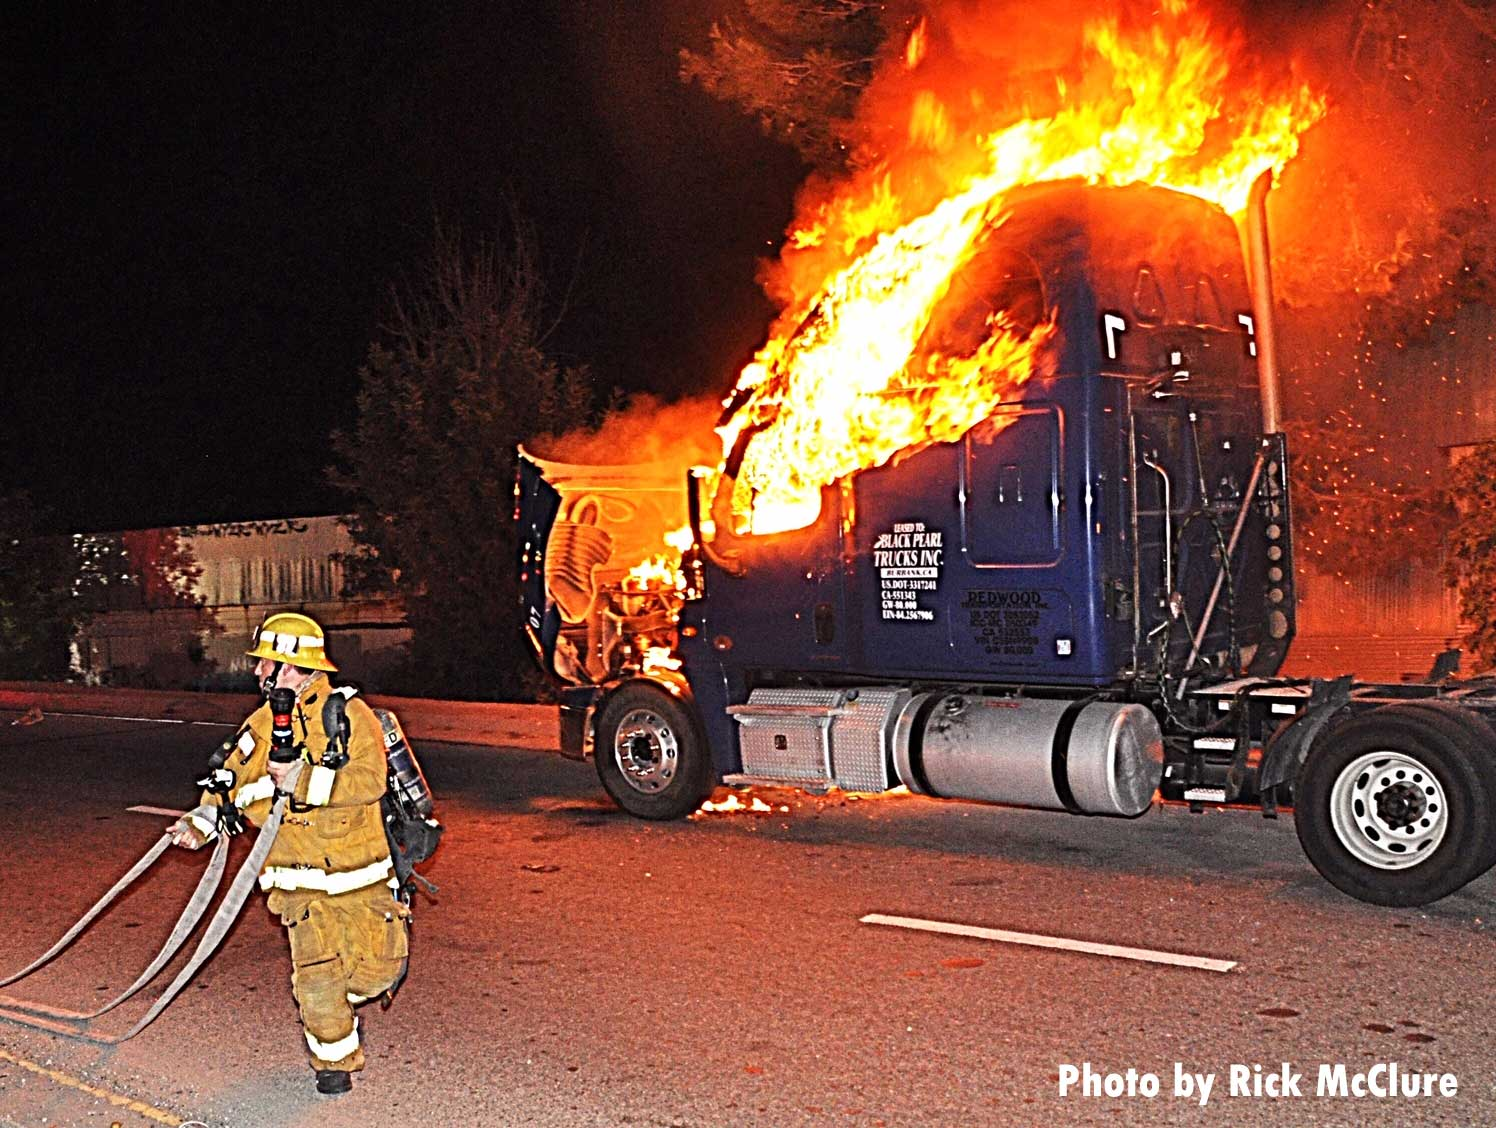 A firefighter stretches a hoseline in front of a burning tractor trailer